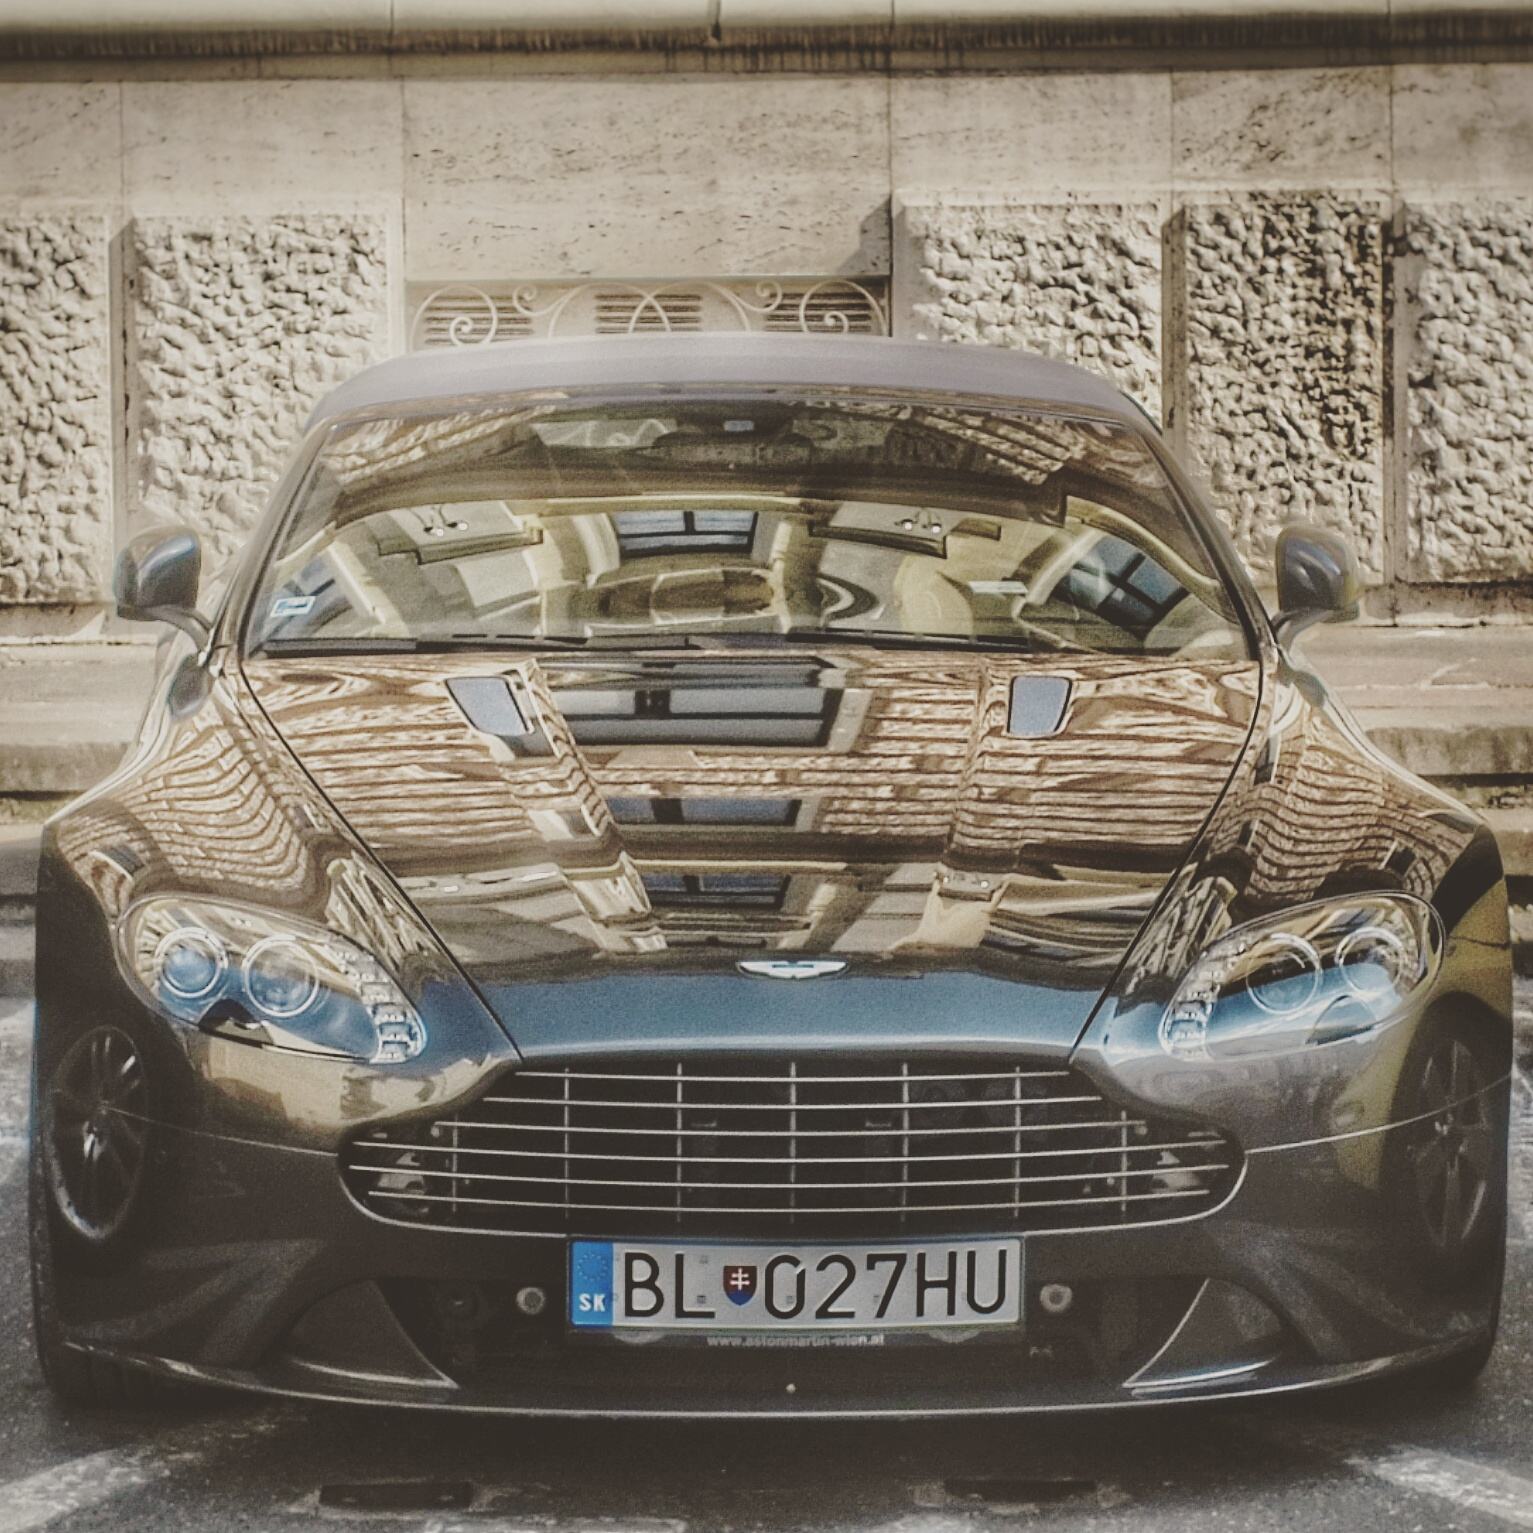 There Are Two Types Of Cars I Love The Pure Sports Car Big Go Kart And The Sports Car Playing The Luxury Car Que Aston Martin